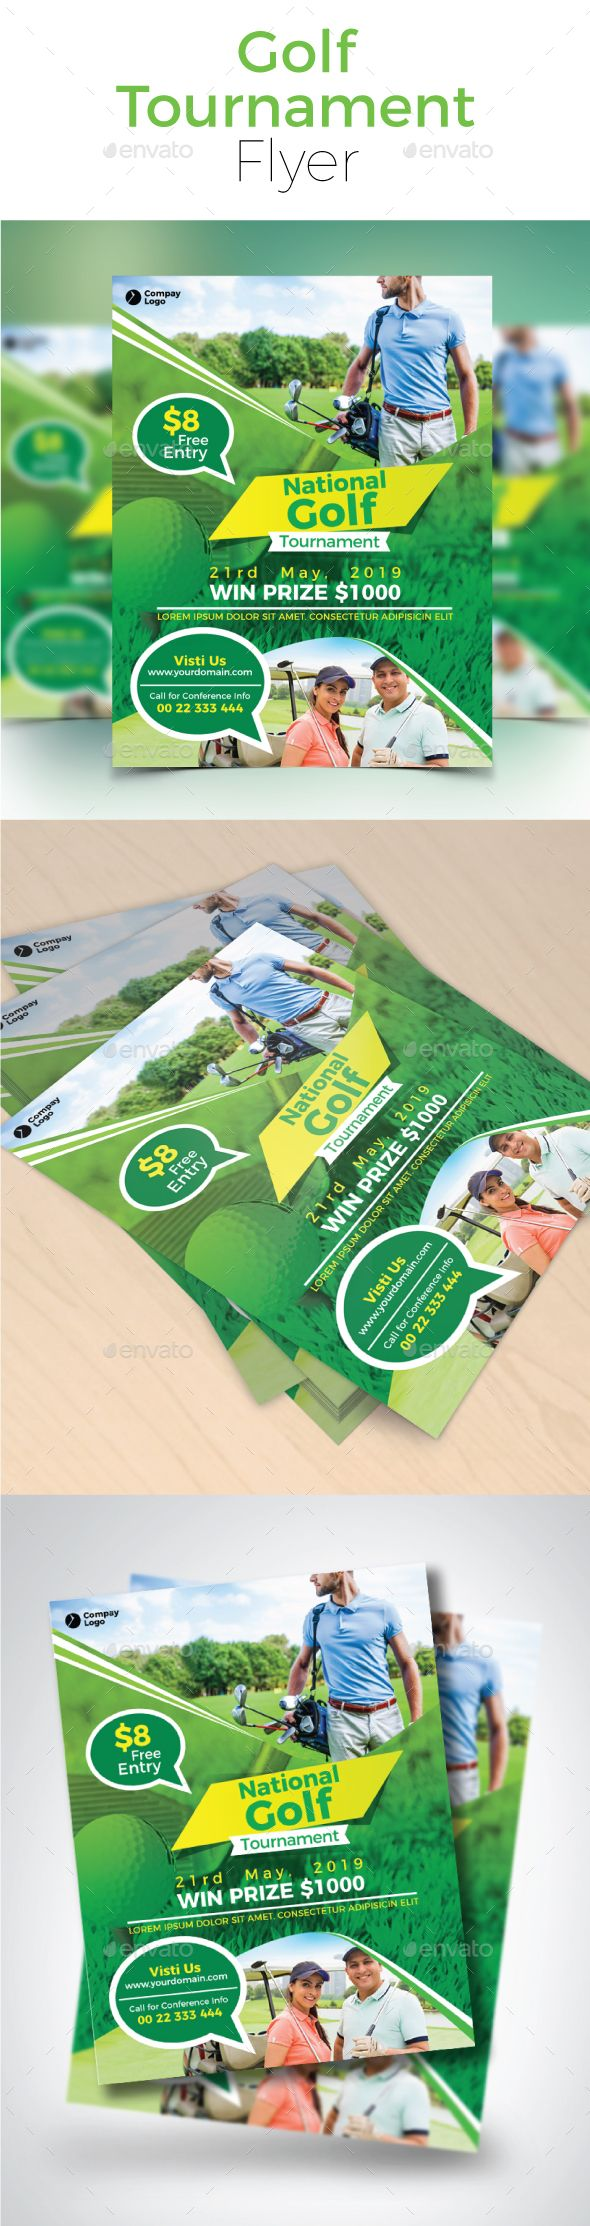 Golf Tournament Flyer  Flyer Template Adobe And Illustrator Cs